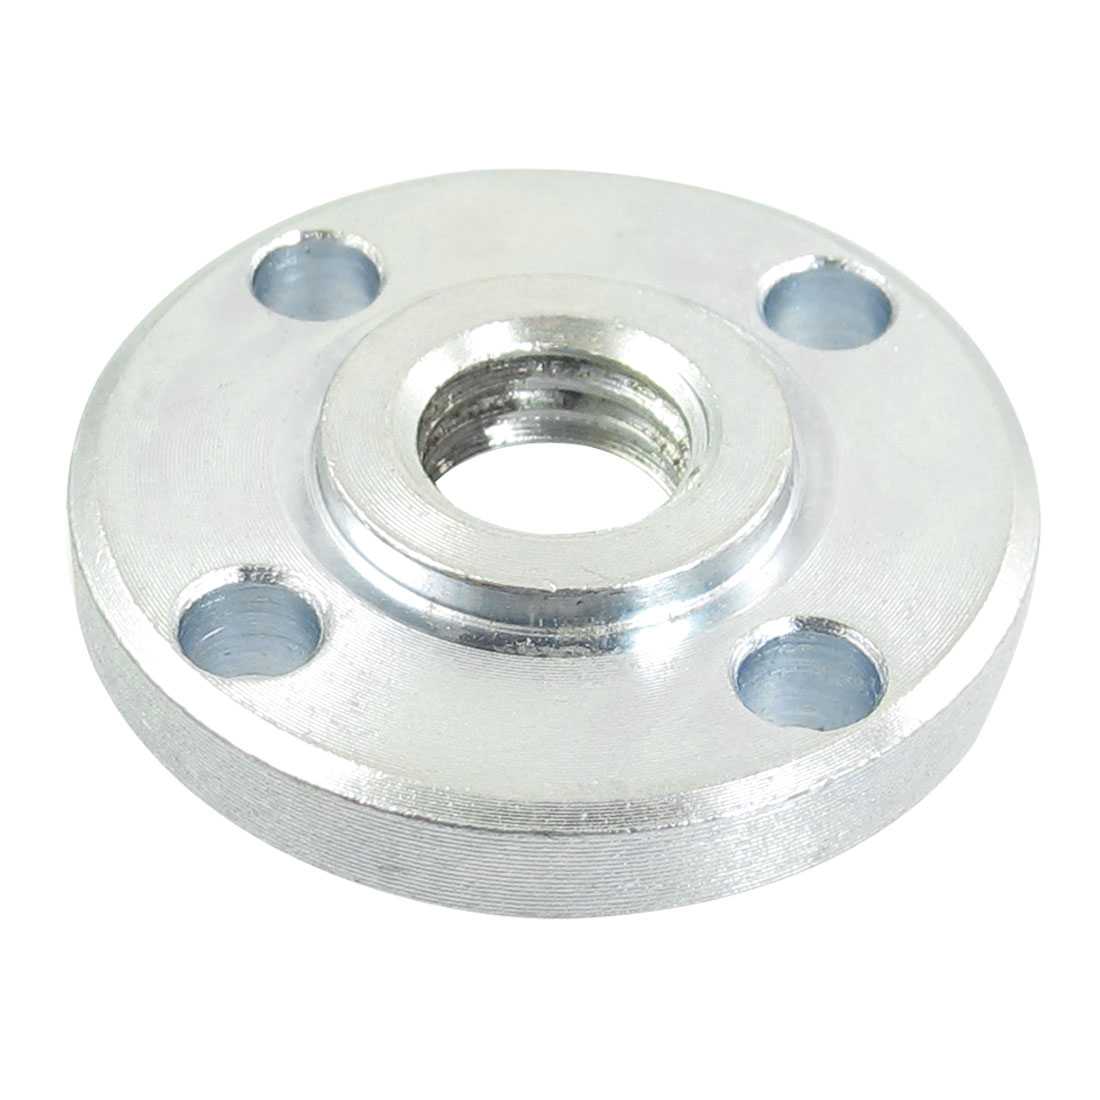 Round Shape Electrical Angle Grinder Inner Outer Flange Set for Hitachi 180